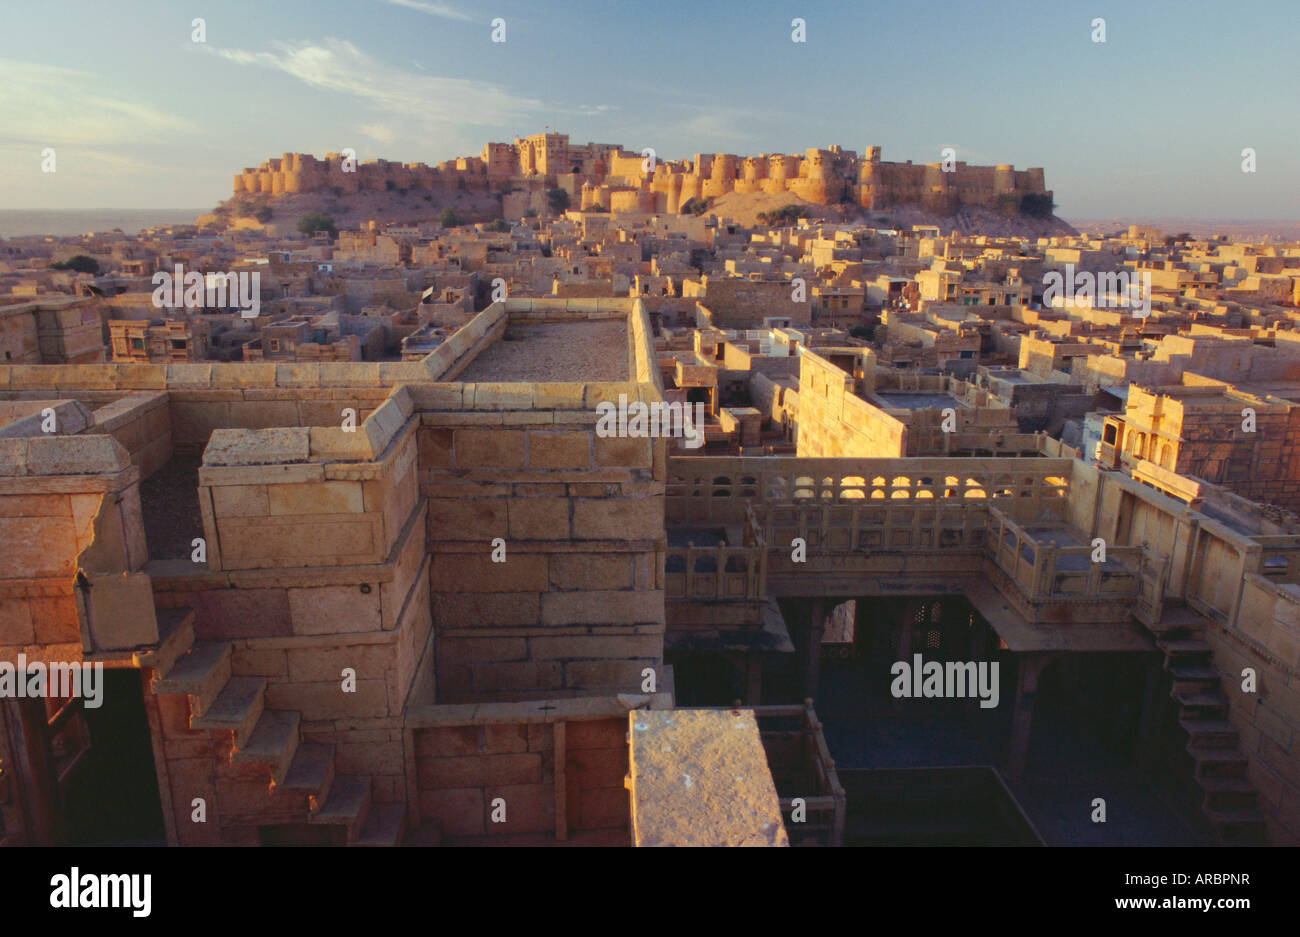 View of Jaisalmer Fort, which has 99 bastions around its circumference, Jaisalmer, Rajasthan, India - Stock Image